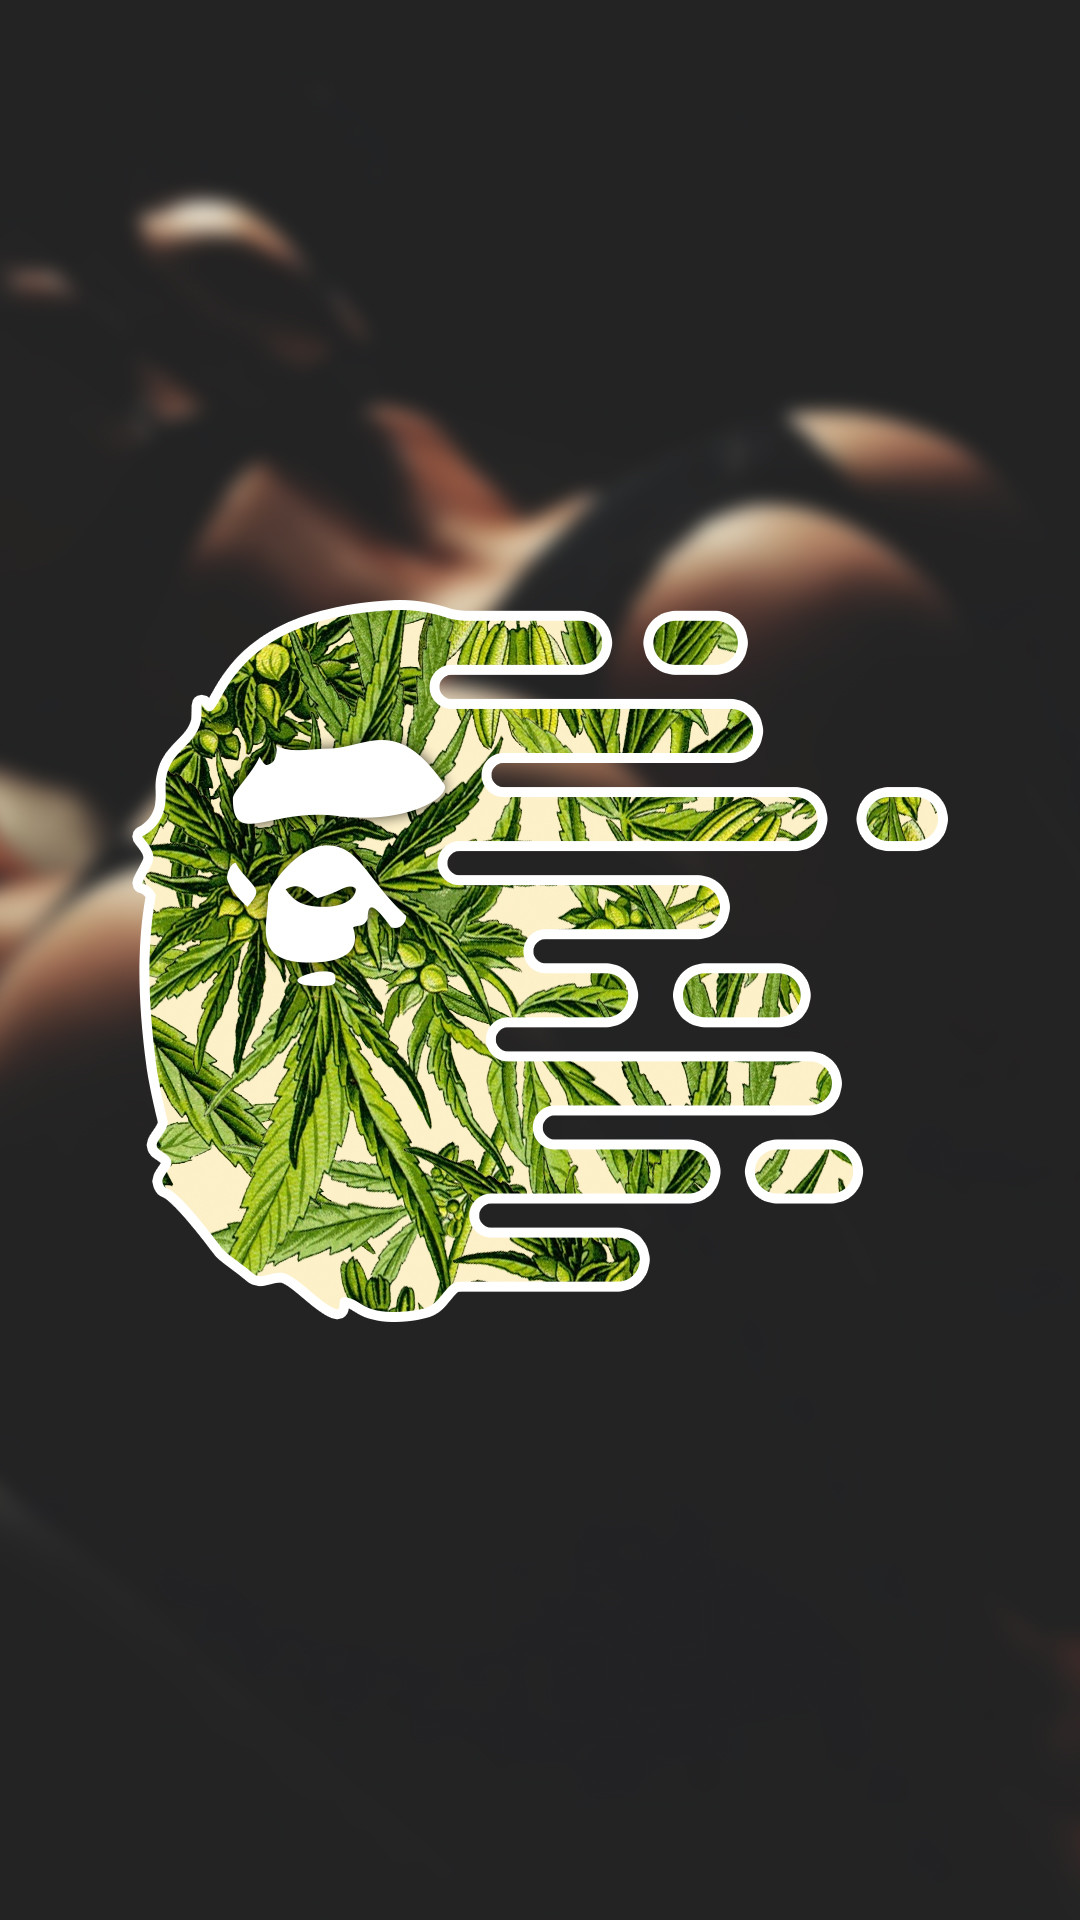 1920x1200 High Resolution Awesome Bape Milo Wallpapers HD 6 Full Size